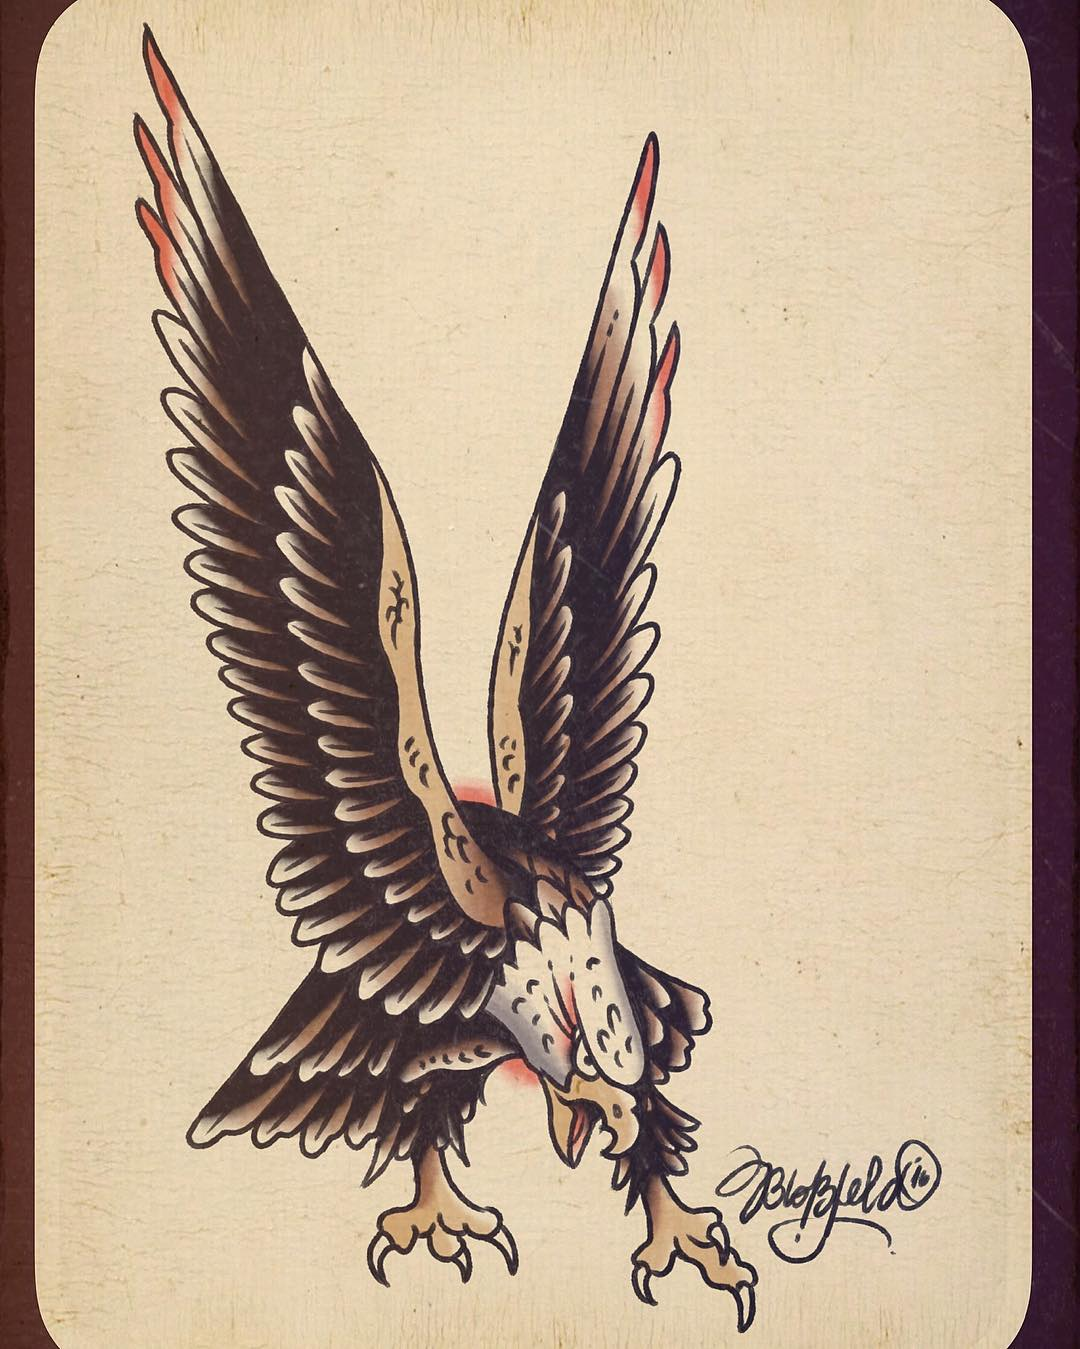 eagle flash, inspired by the old masters.. #matthiasblossfeld #sideshowtraveling